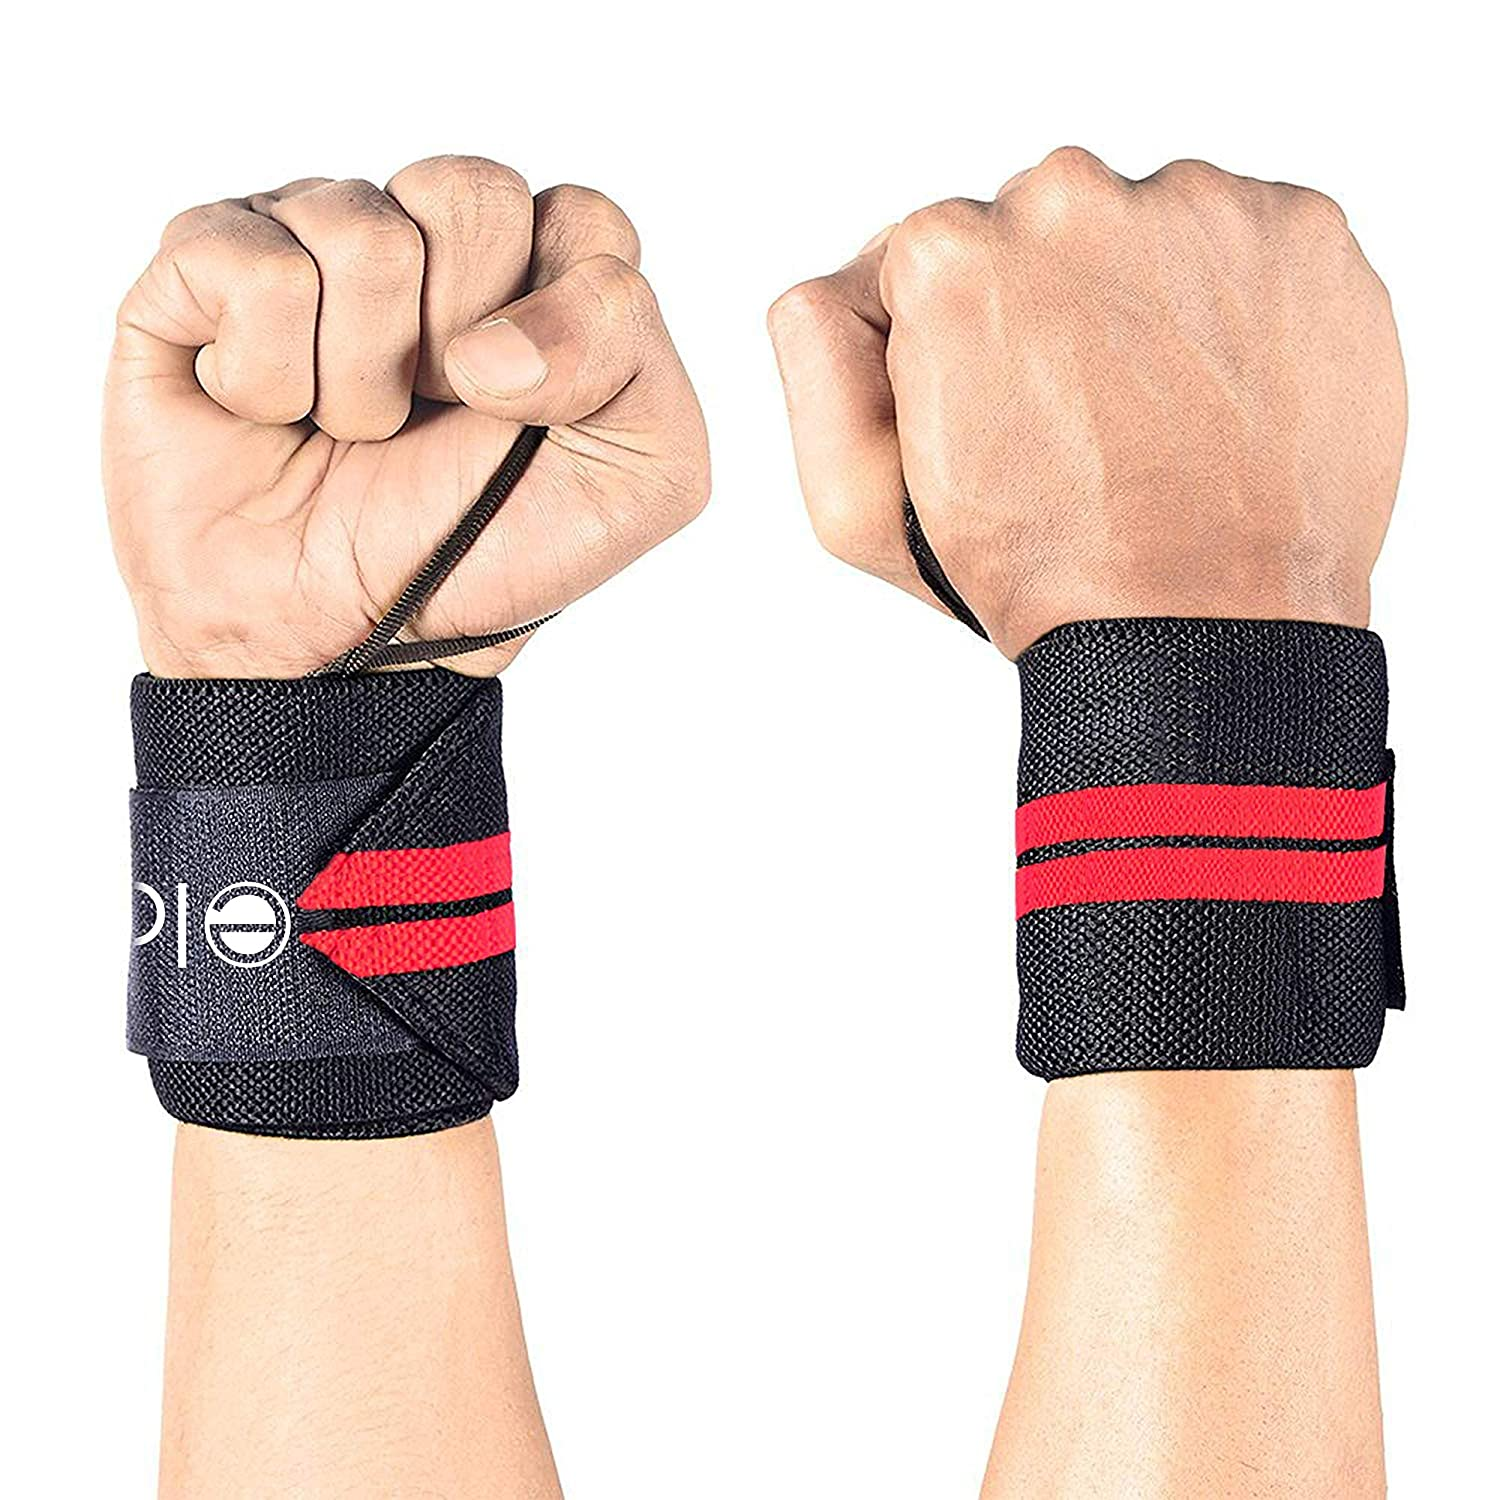 Elove Wrist Wraps Support With Thumb Loops - Professional Grade Wrist  Braces for Men & Women - Weight Lifting, Crossfit, Powerlifting,  Strength,Training, ...